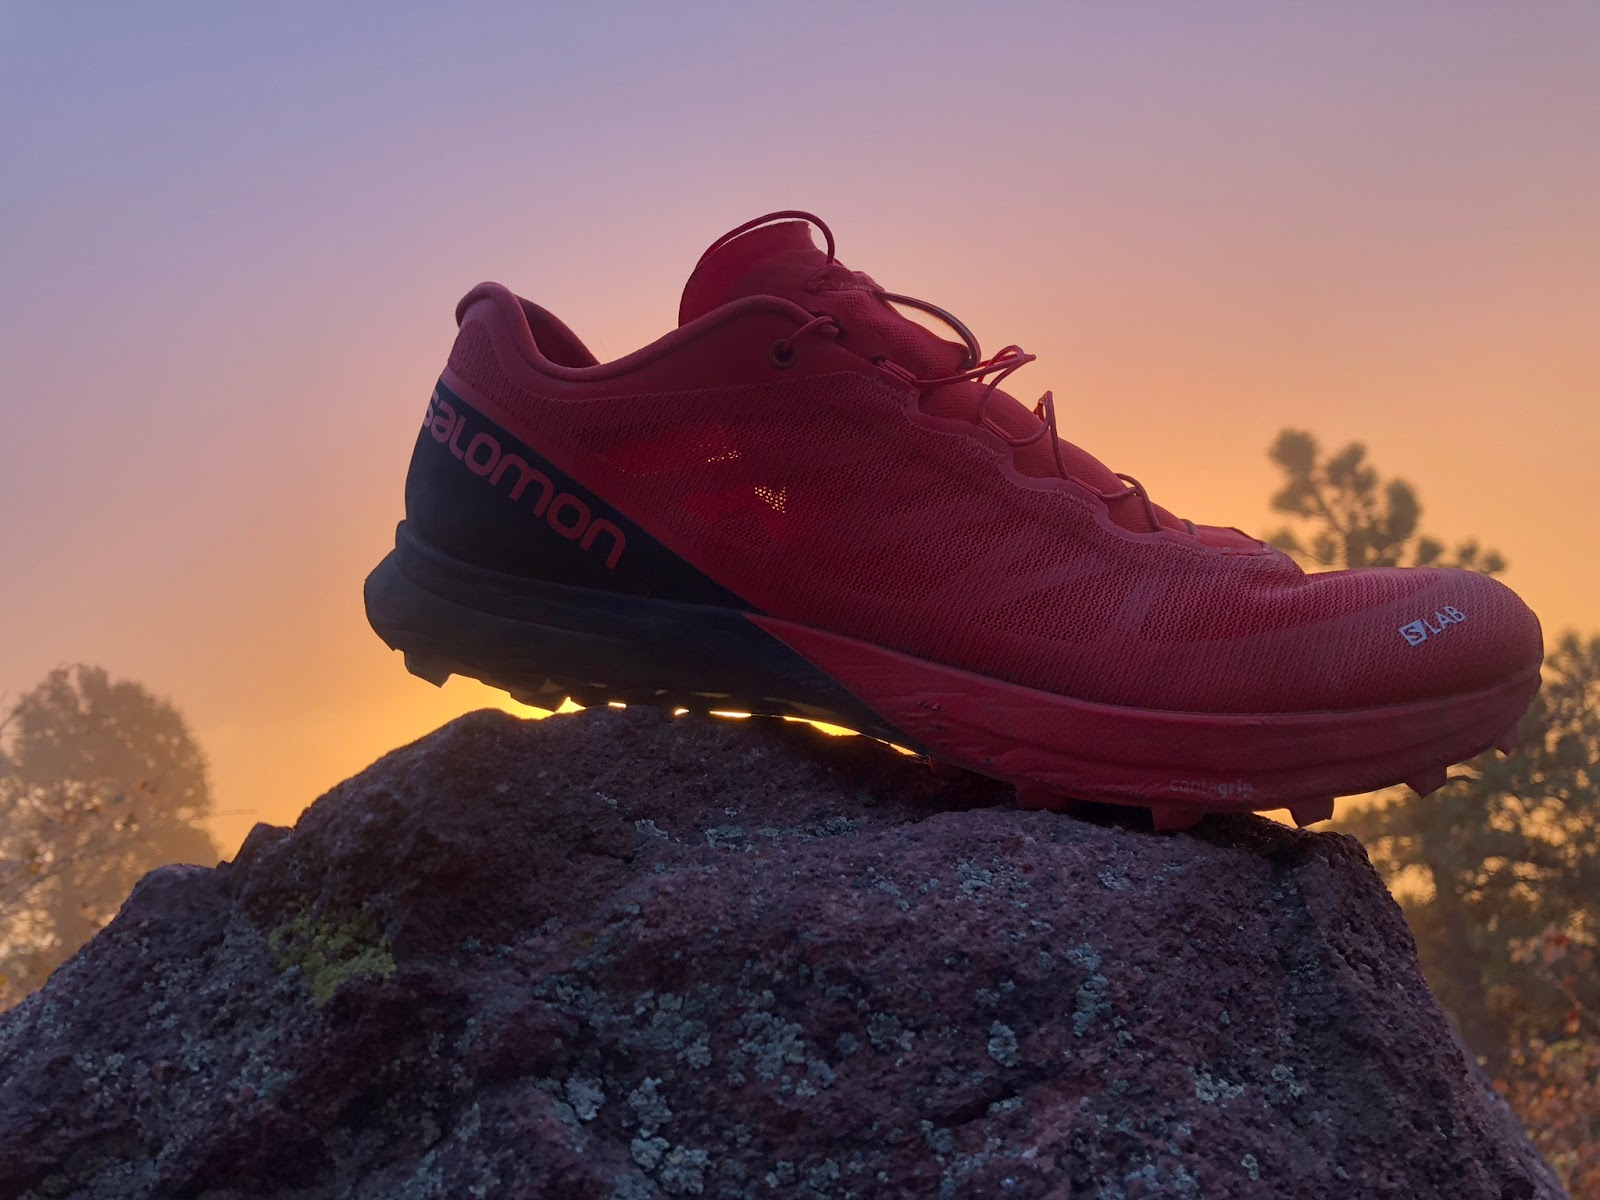 new product 2e3f6 6ceb0 Road Trail Run: Salomon S/Lab Sense 7 SG Review - Ultralight ...